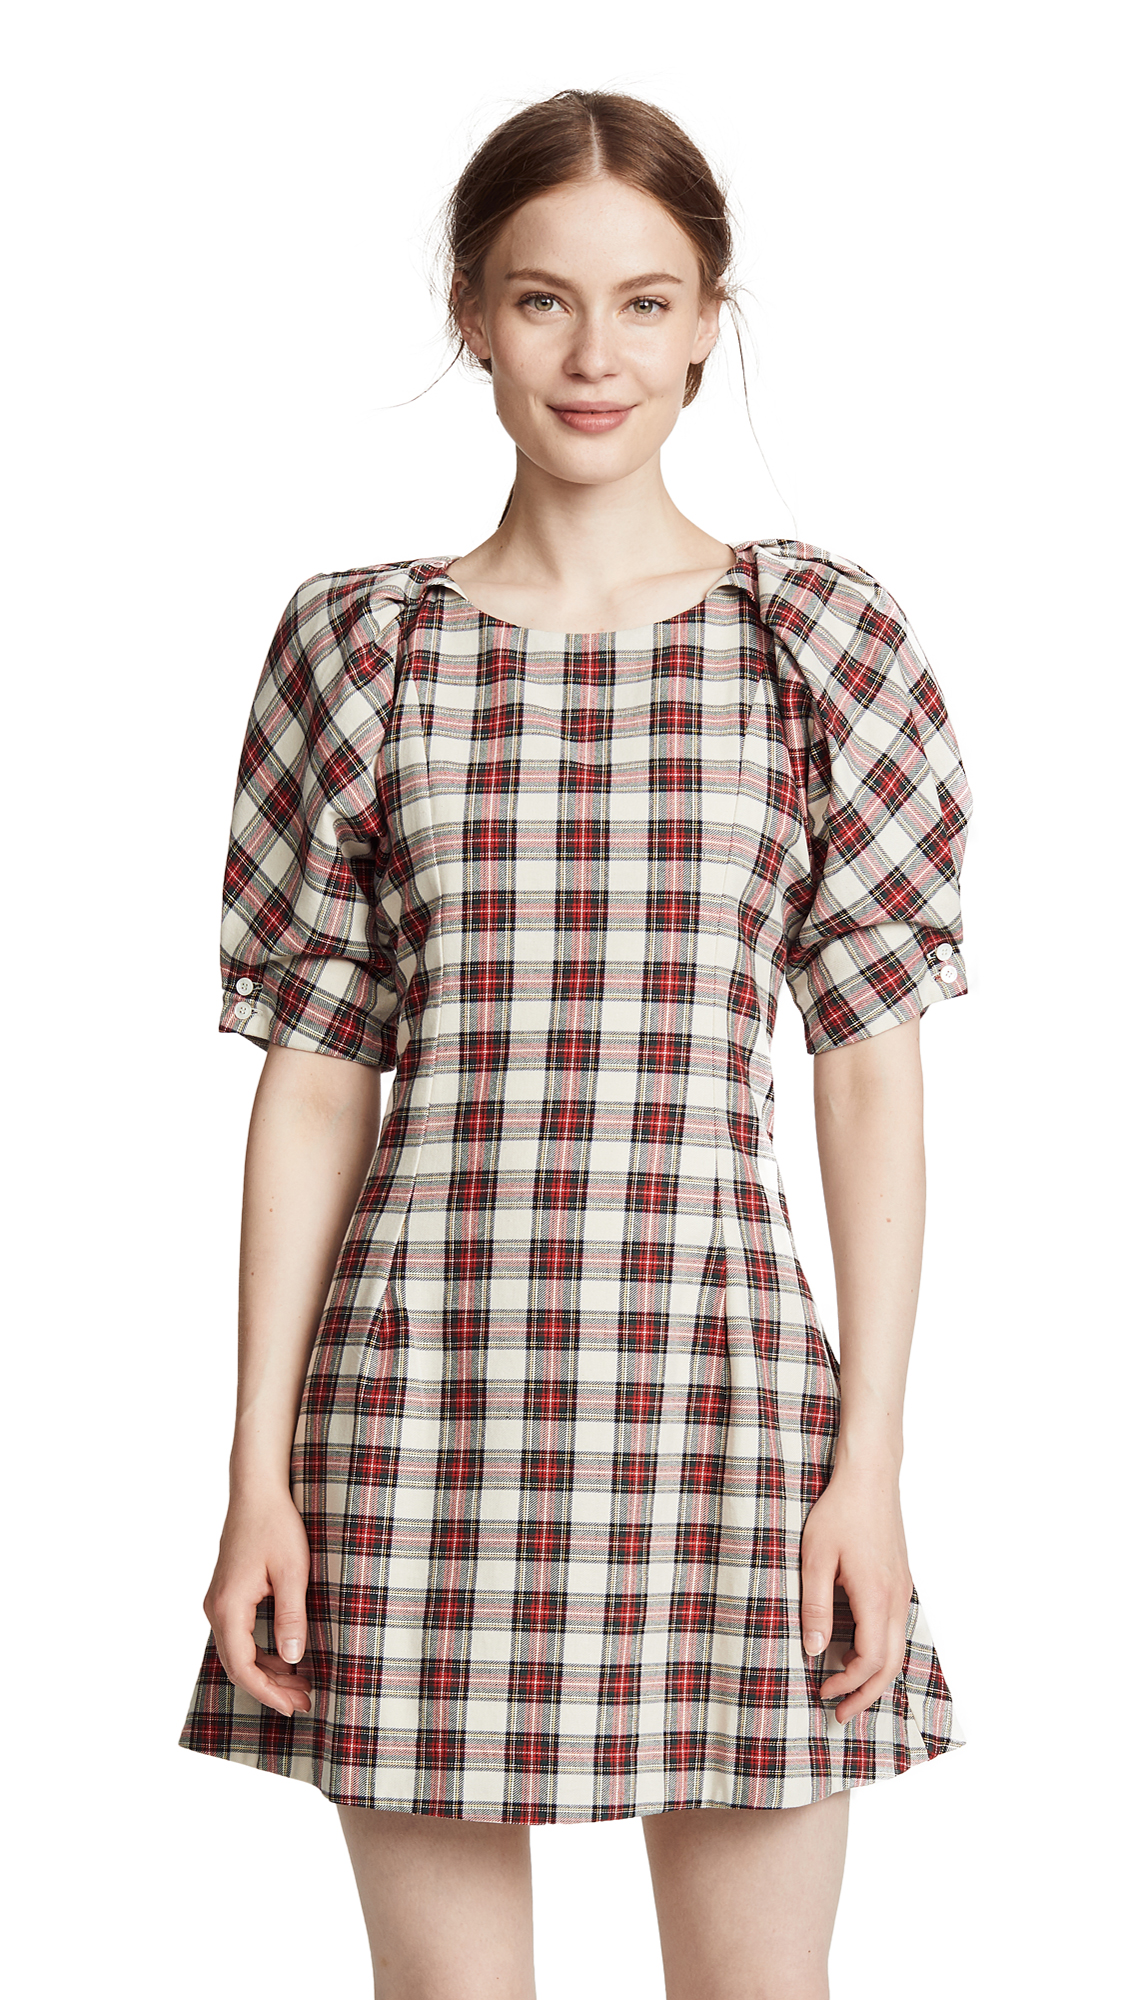 Fashionably Early Plaid Cotton Mini Dress, Cream/Red Tartan Plaid